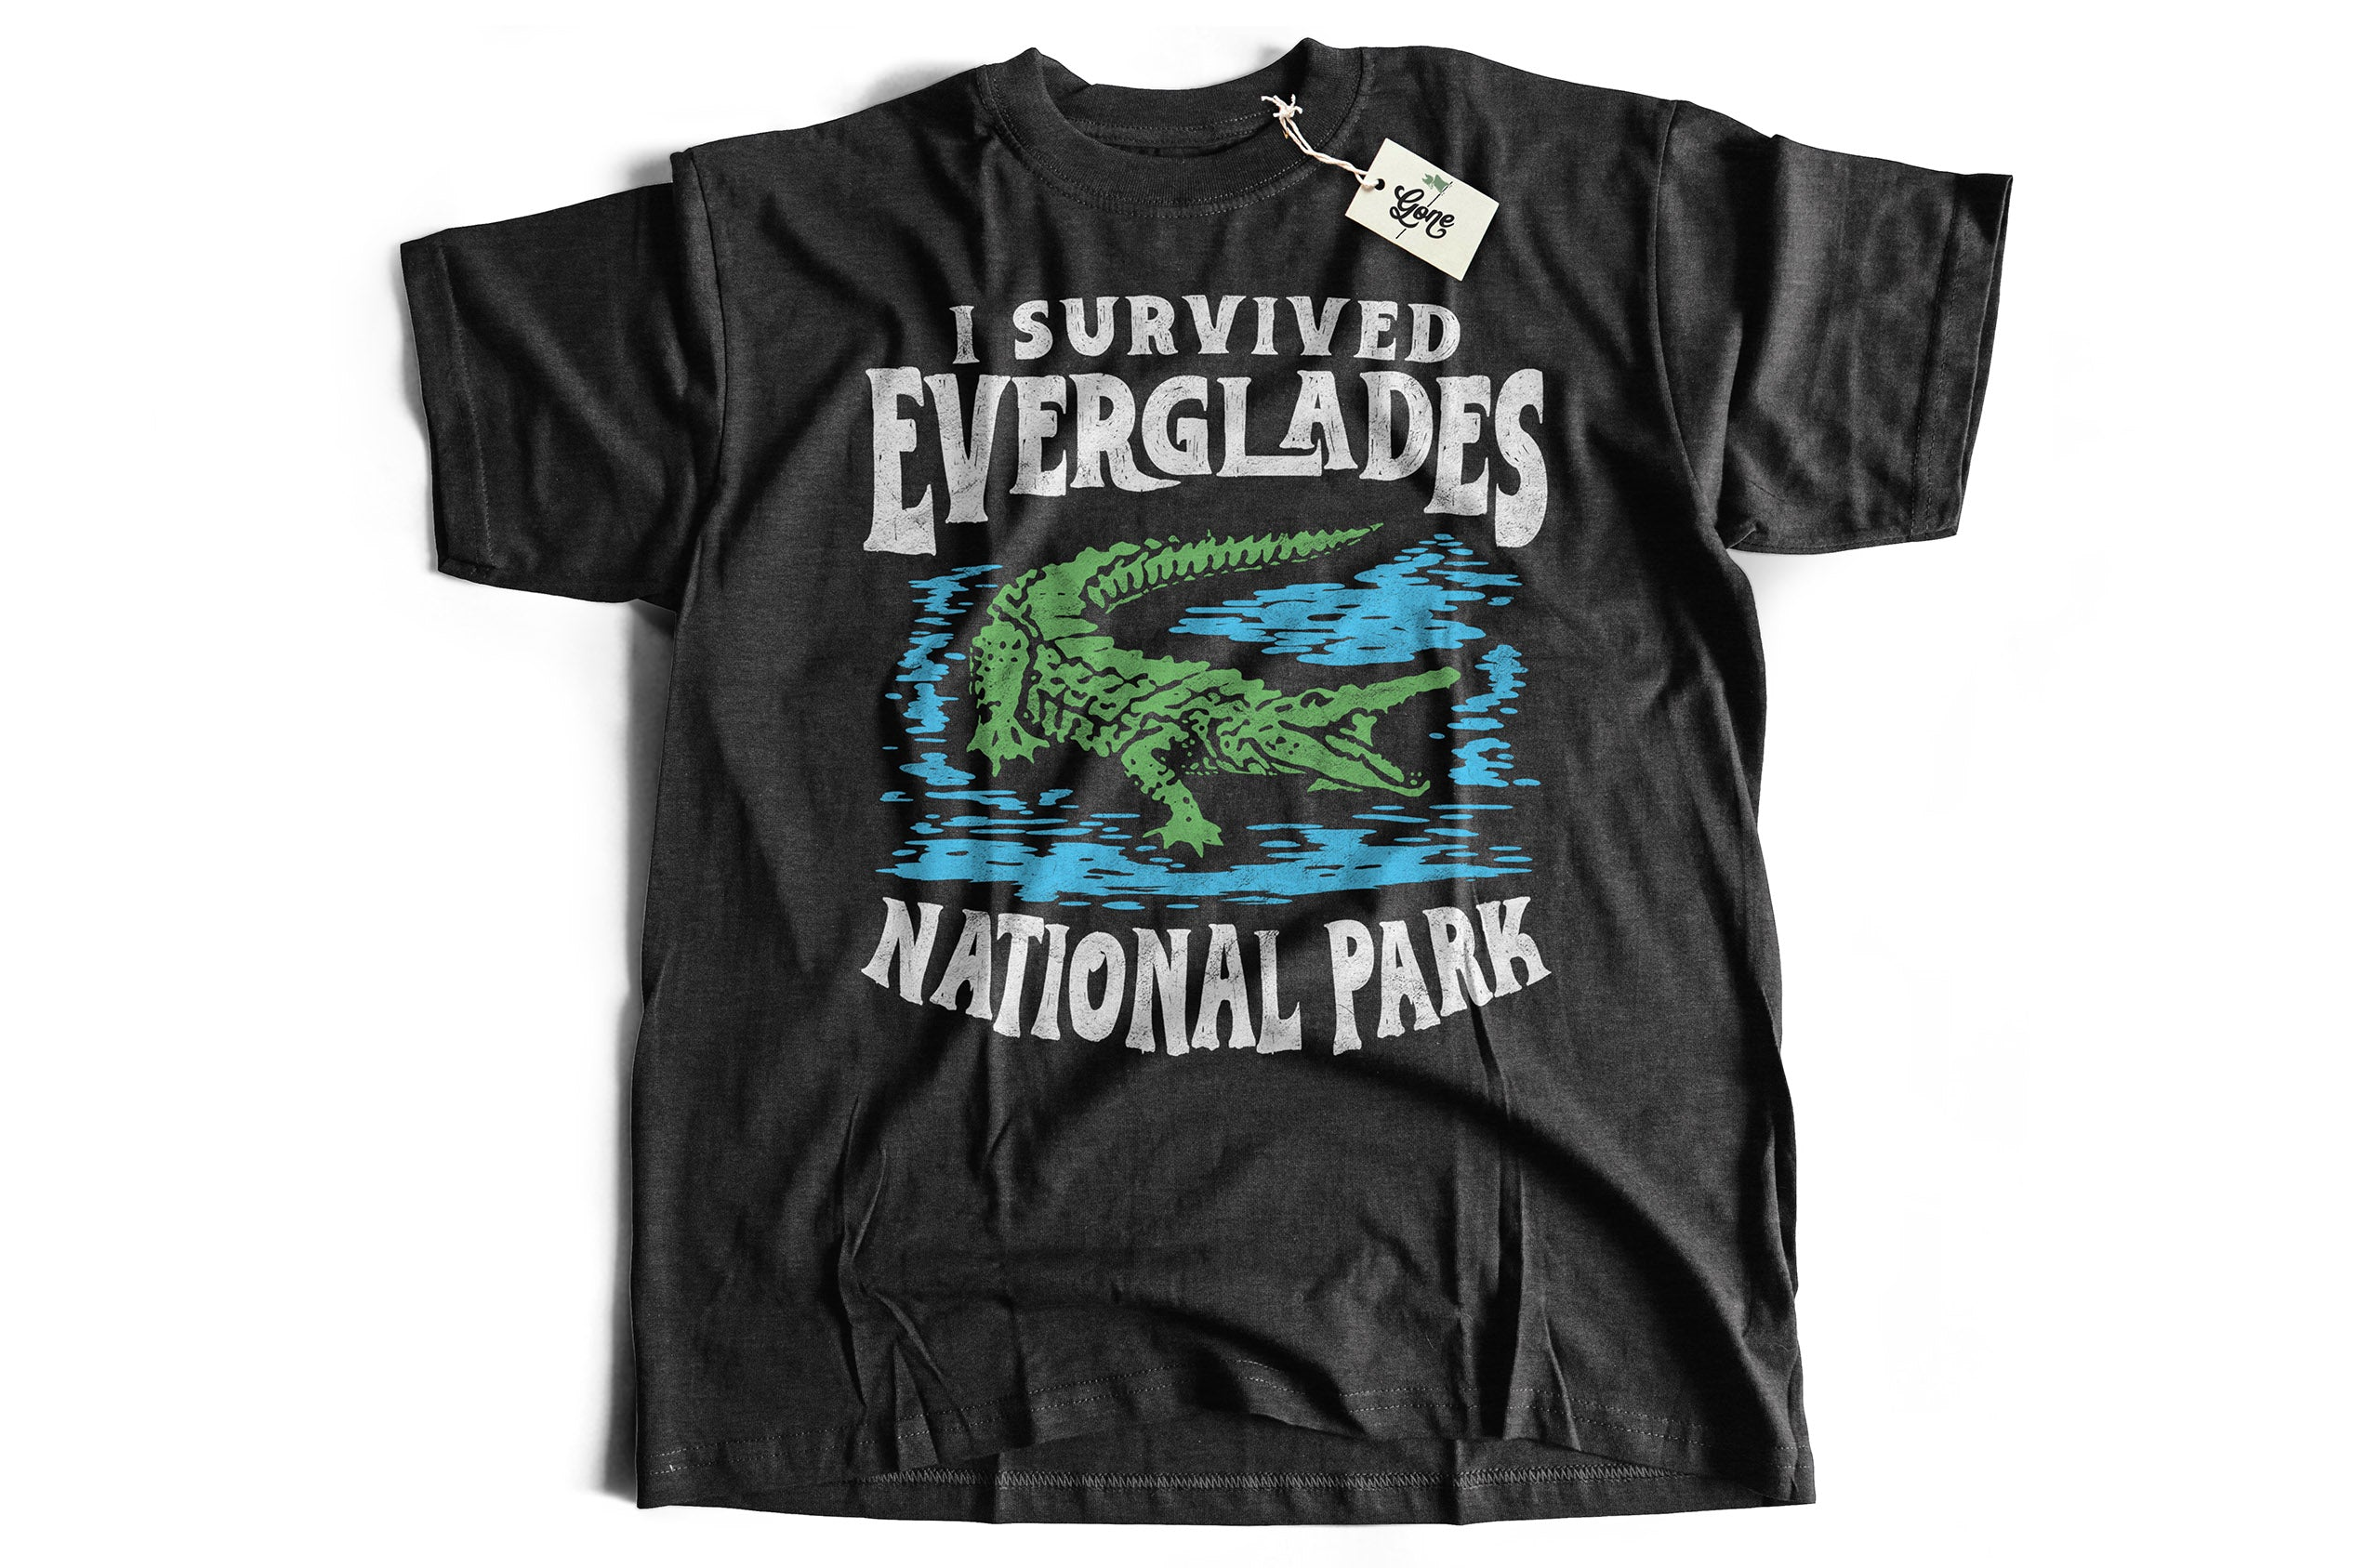 Everglades National Park Florida Survivor Funny Short-Sleeve Unisex T-Shirt